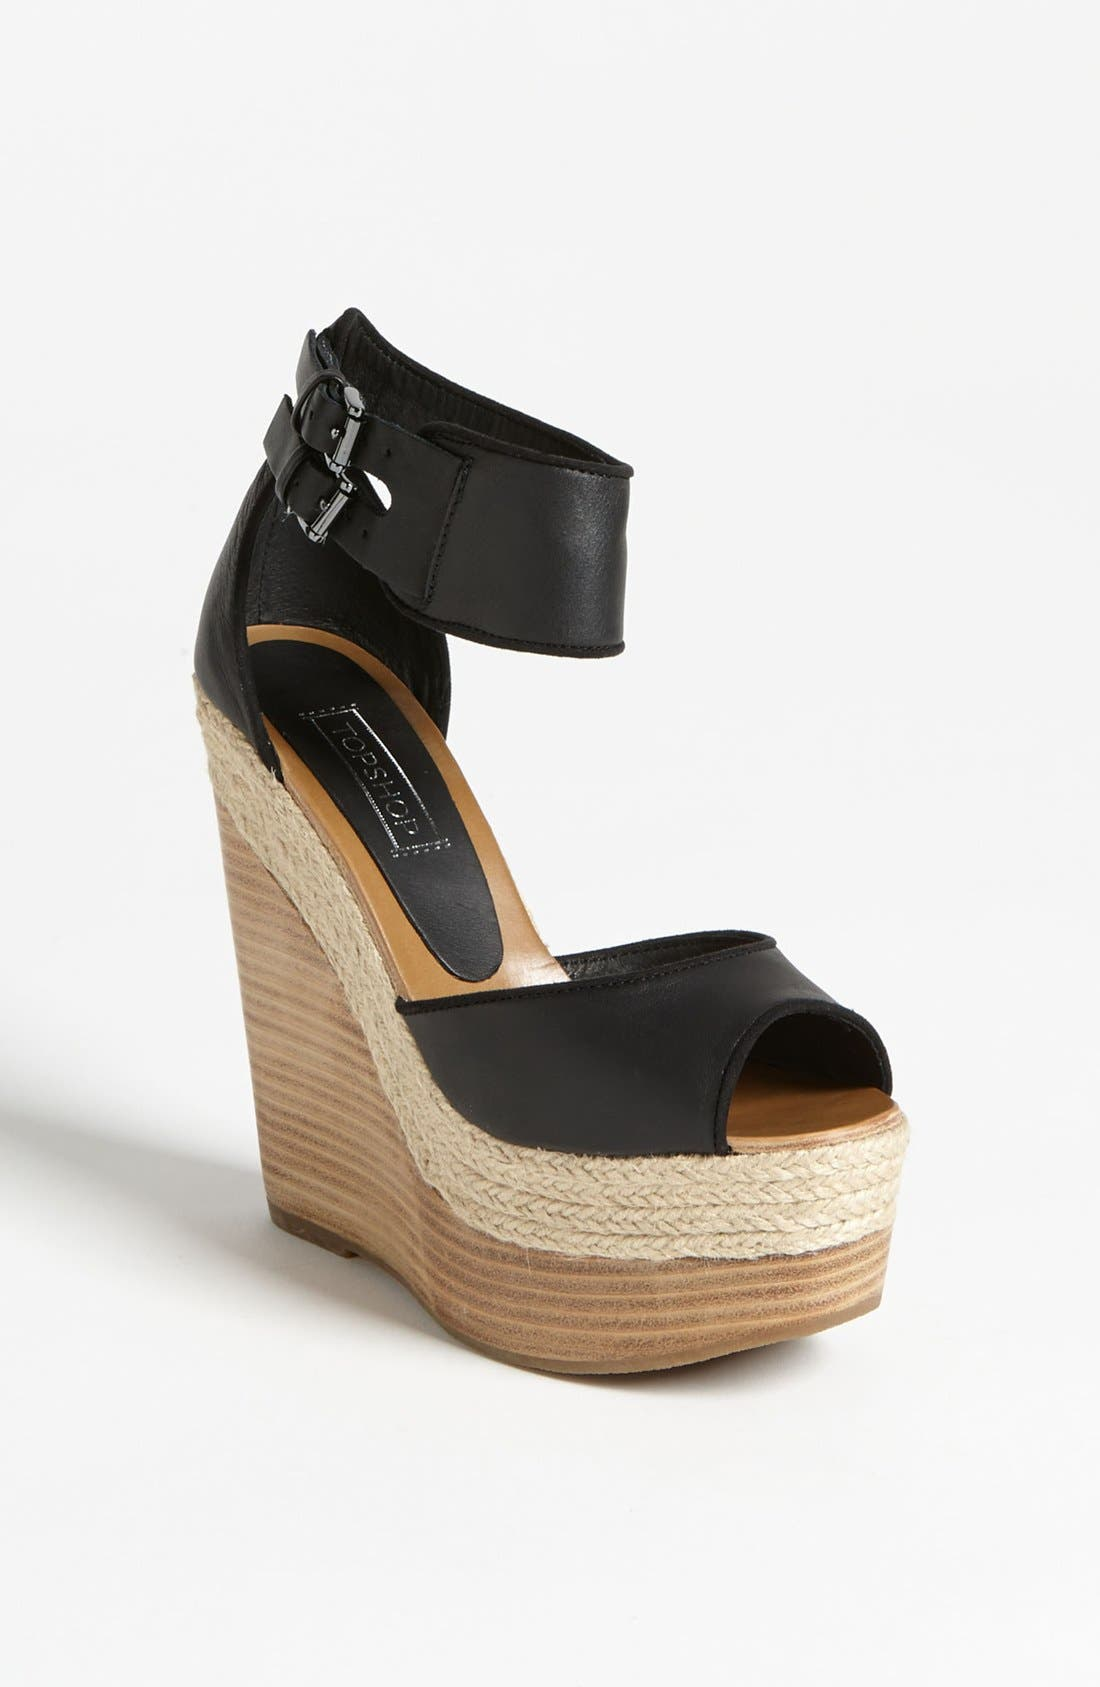 Alternate Image 1 Selected - Topshop 'Whirlwind' Wedge Sandal